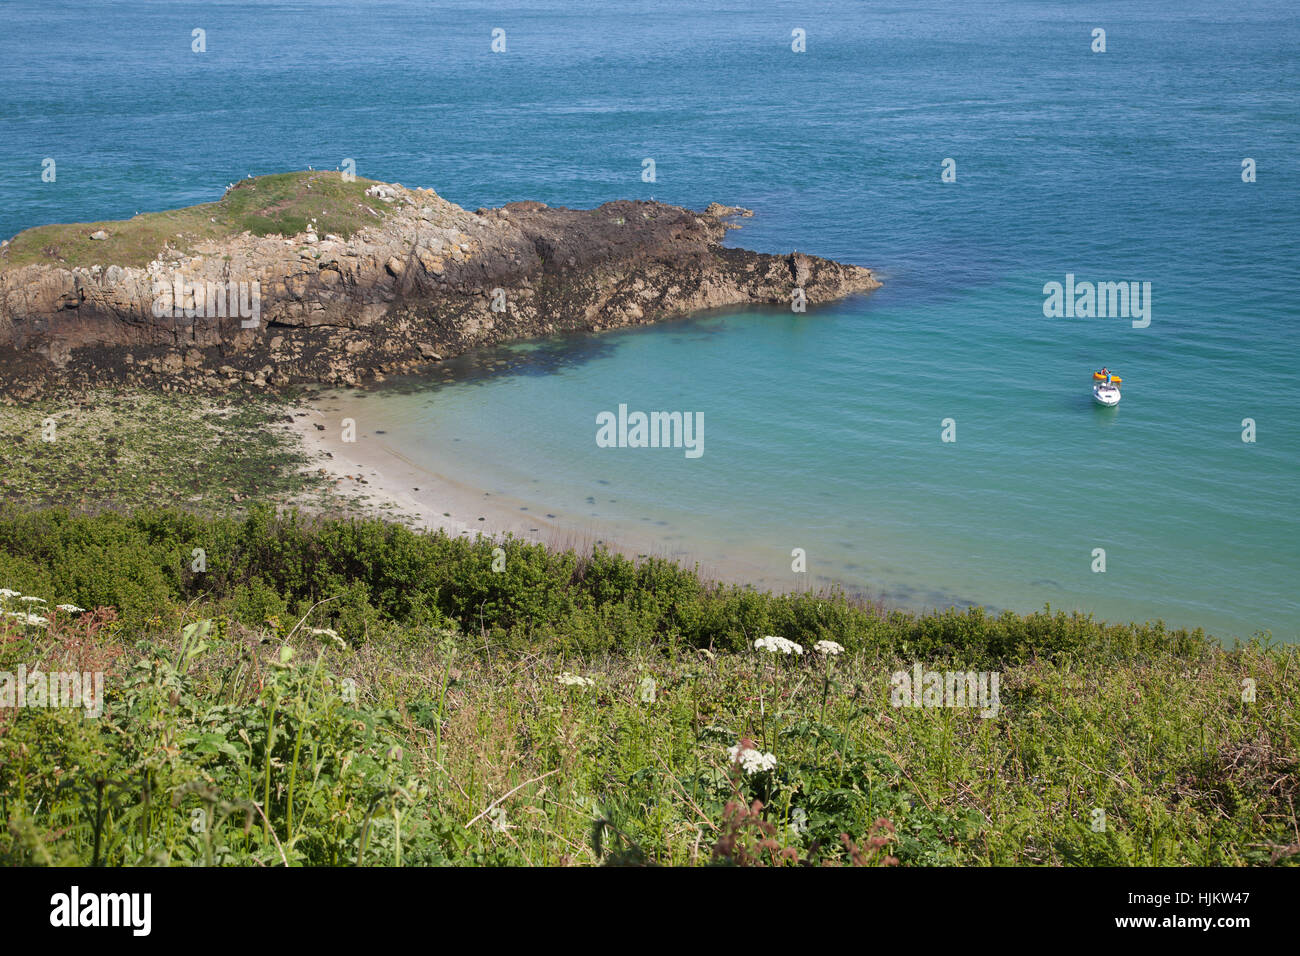 Turboimagehost.com Ls Island Puffin Bay on Herm in the Channel Islands - Stock Image